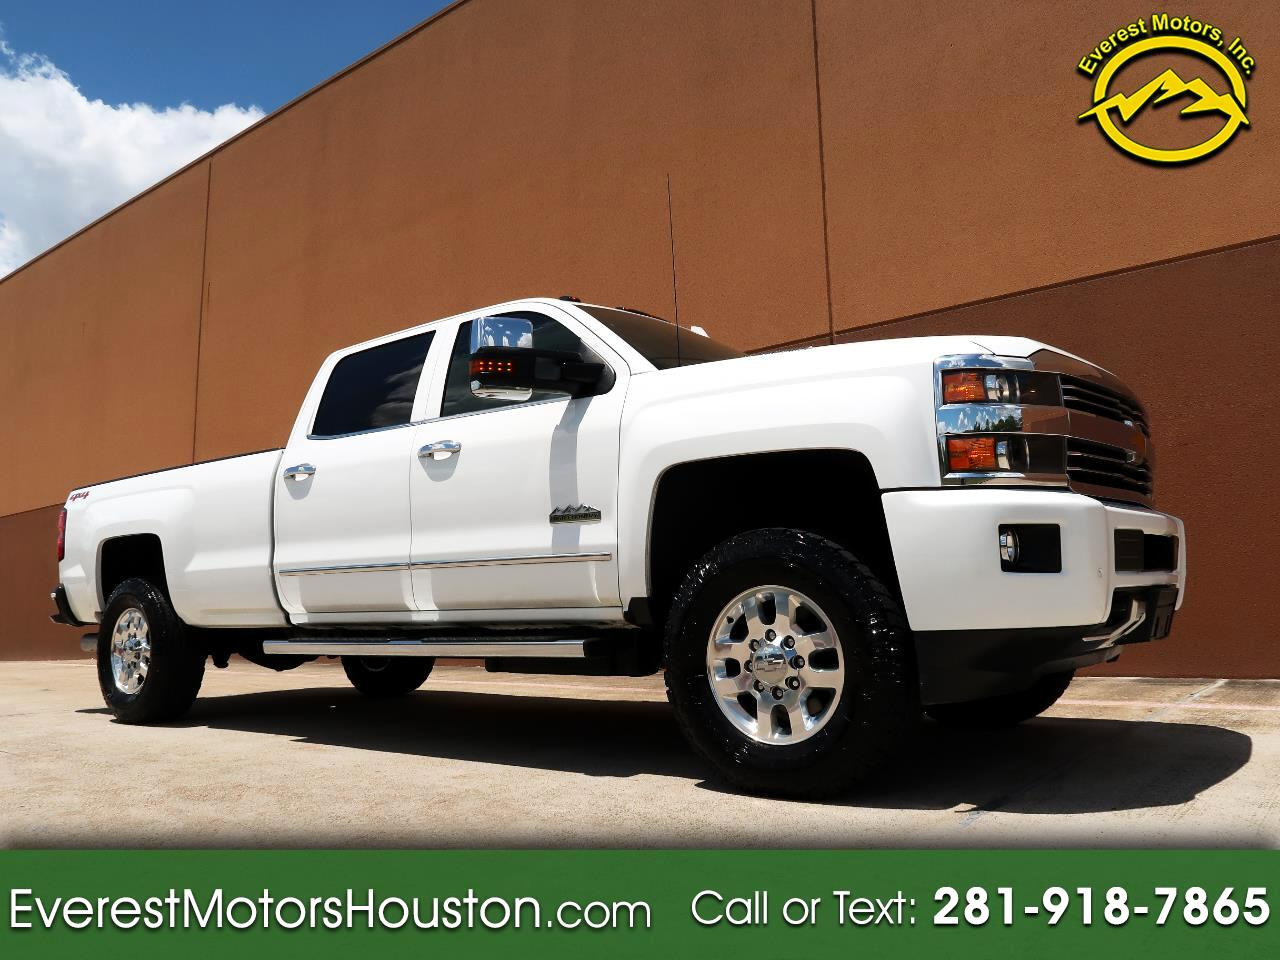 2015 Chevrolet Silverado 3500HD HIGH COUNTRY CREW CAB LONG BED 4WD DIESEL LOADED